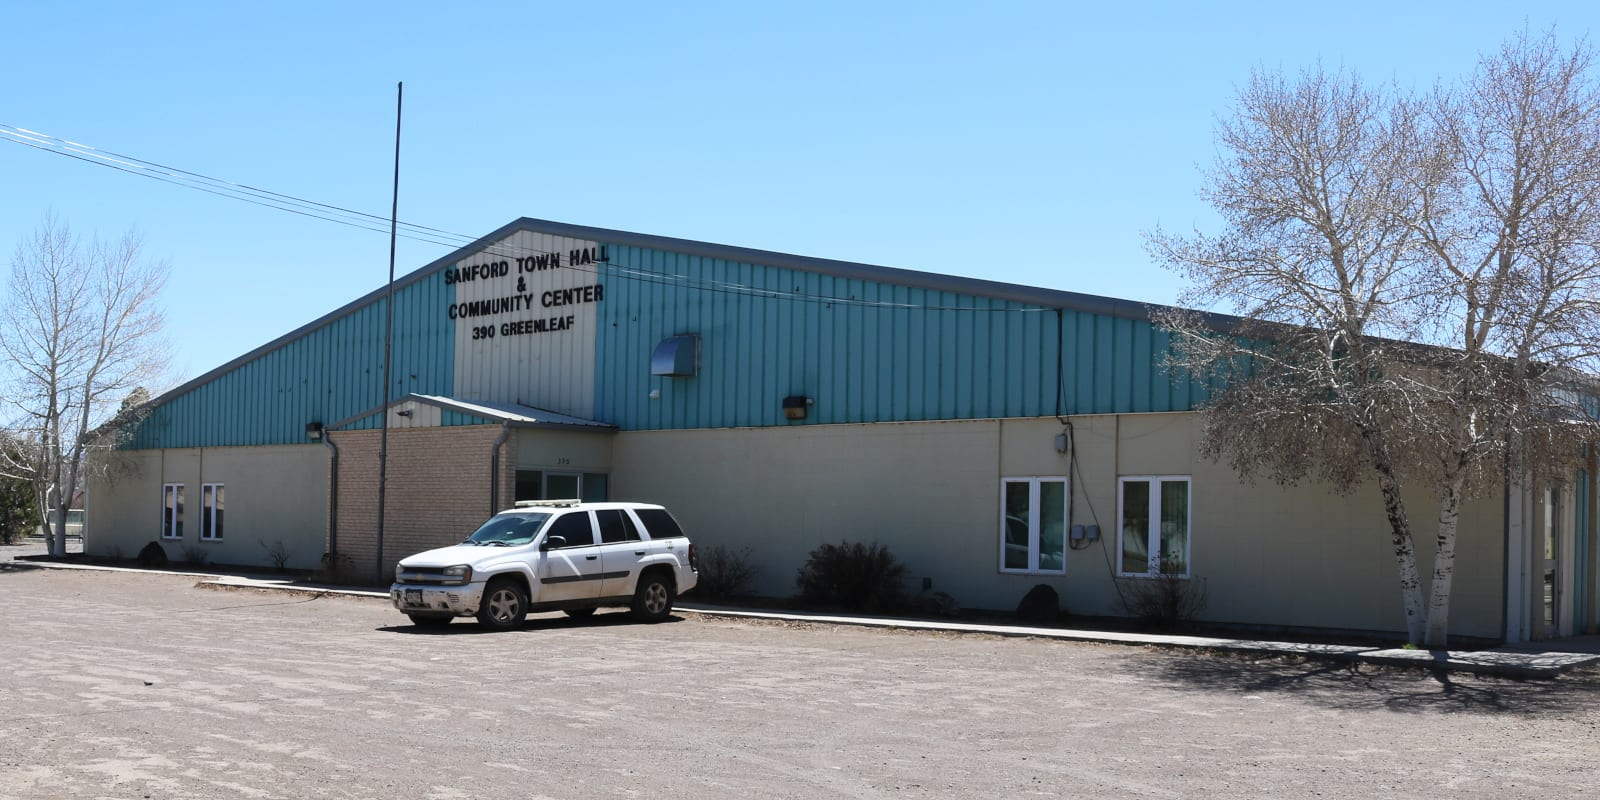 Sanford Colorado Town Hall Community Center